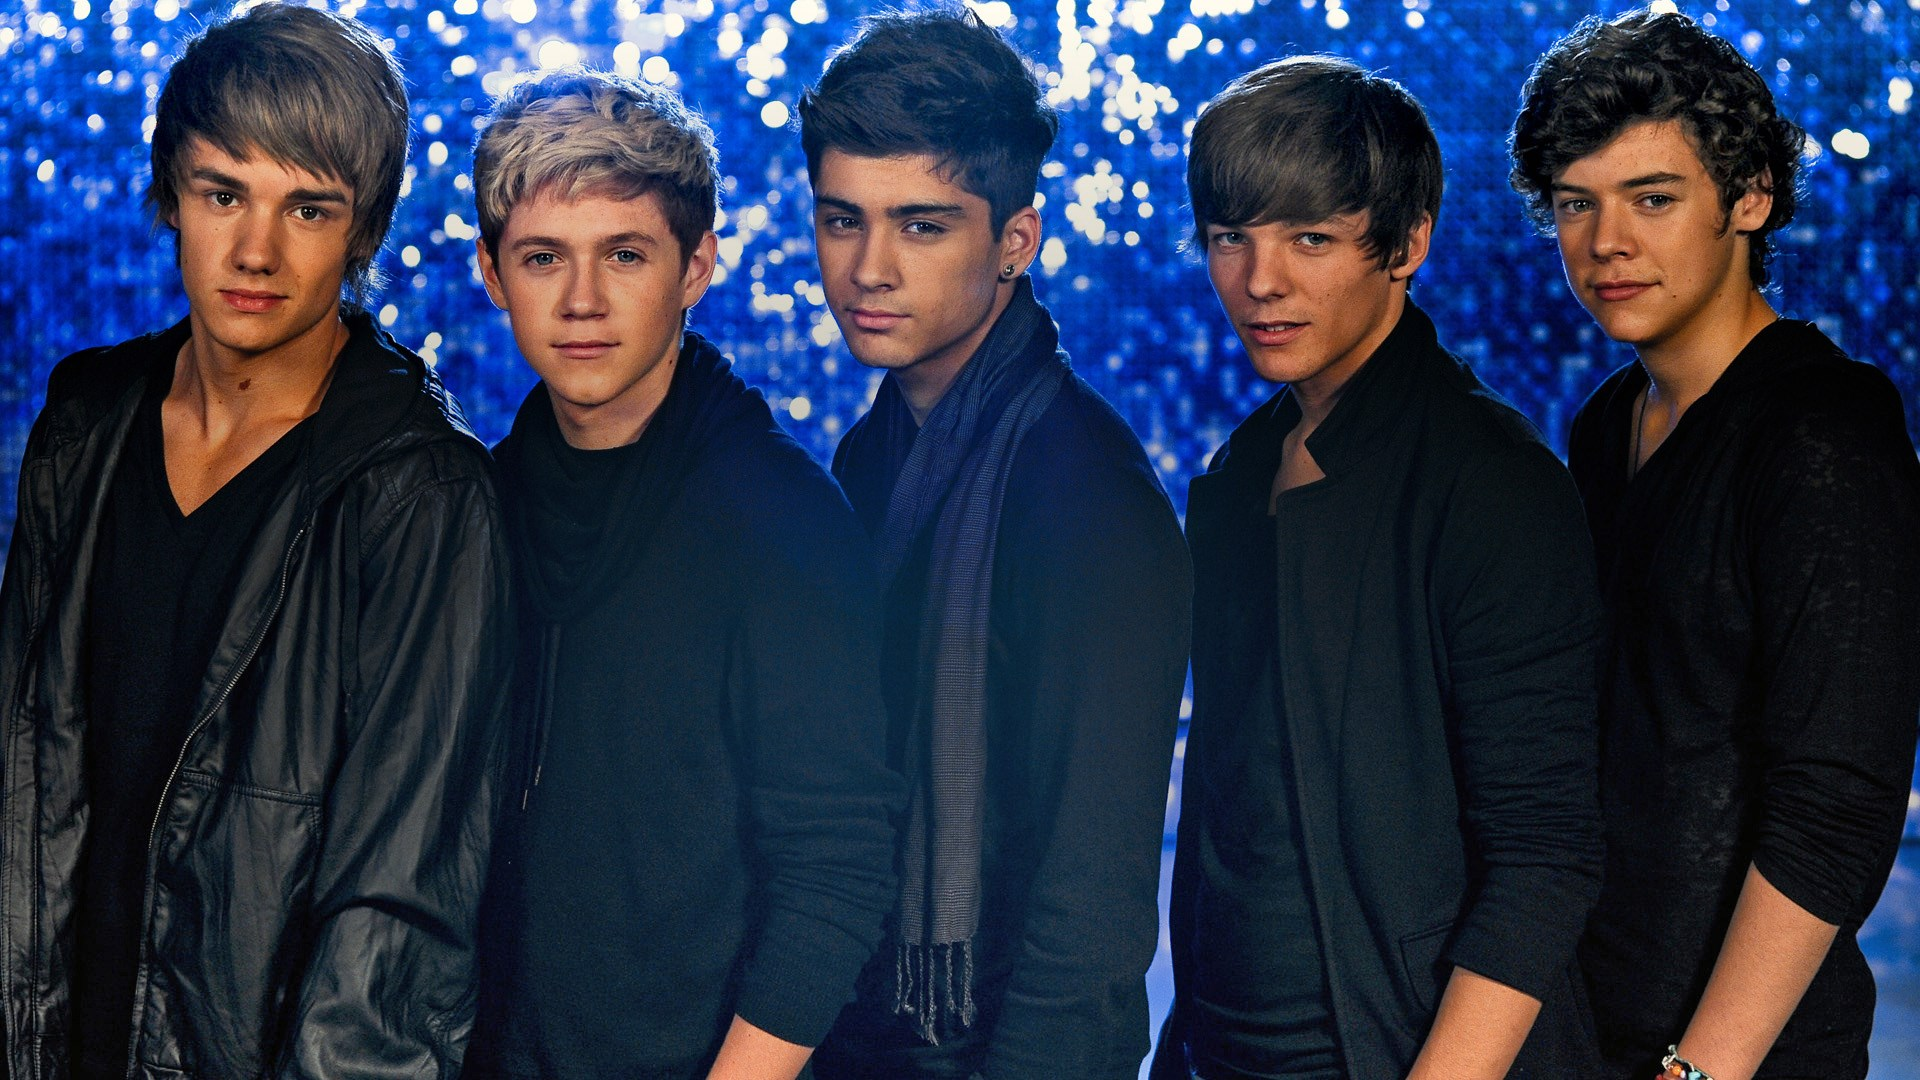 1920-x-1080-px-one-direction-backround-Full-HD-Pictures-by-Seton-Walls-wallpaper-wpc580595